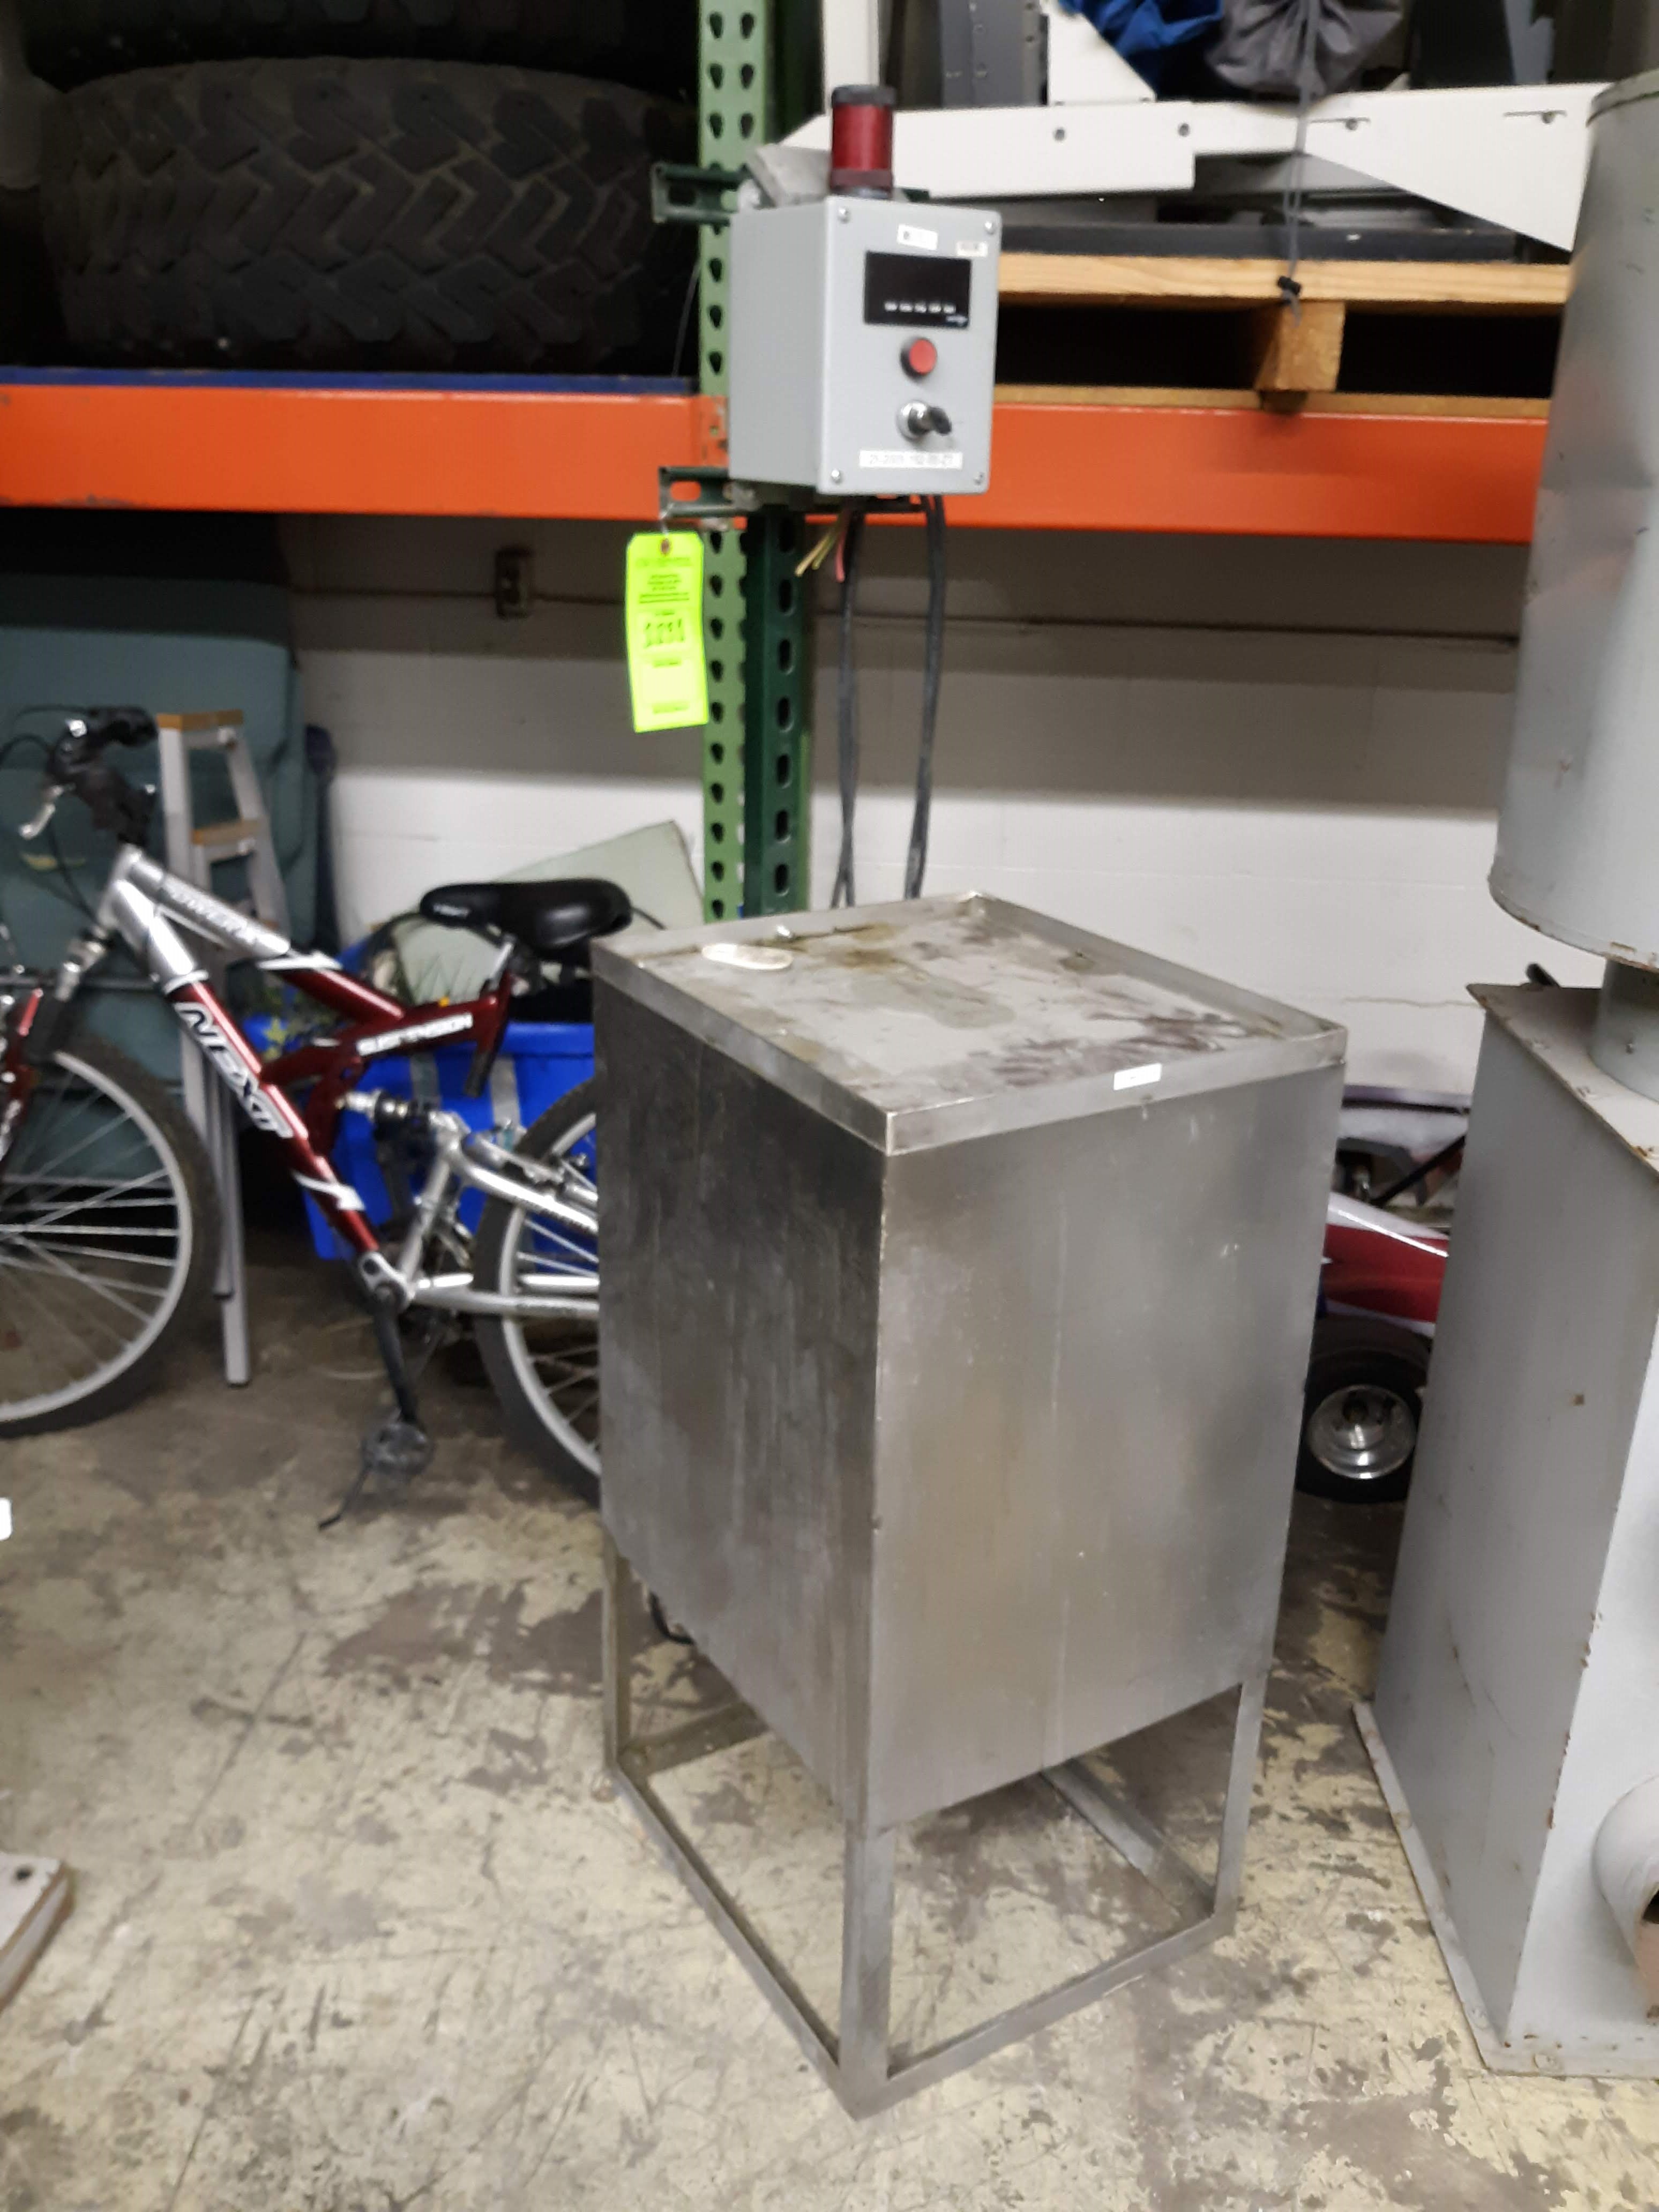 STAINLESS STEEL STAND W/ RED LION CONTROL BOX; POWER OUTLET BOX; SQUARE D GEN PURPOSE TRANSFORMER